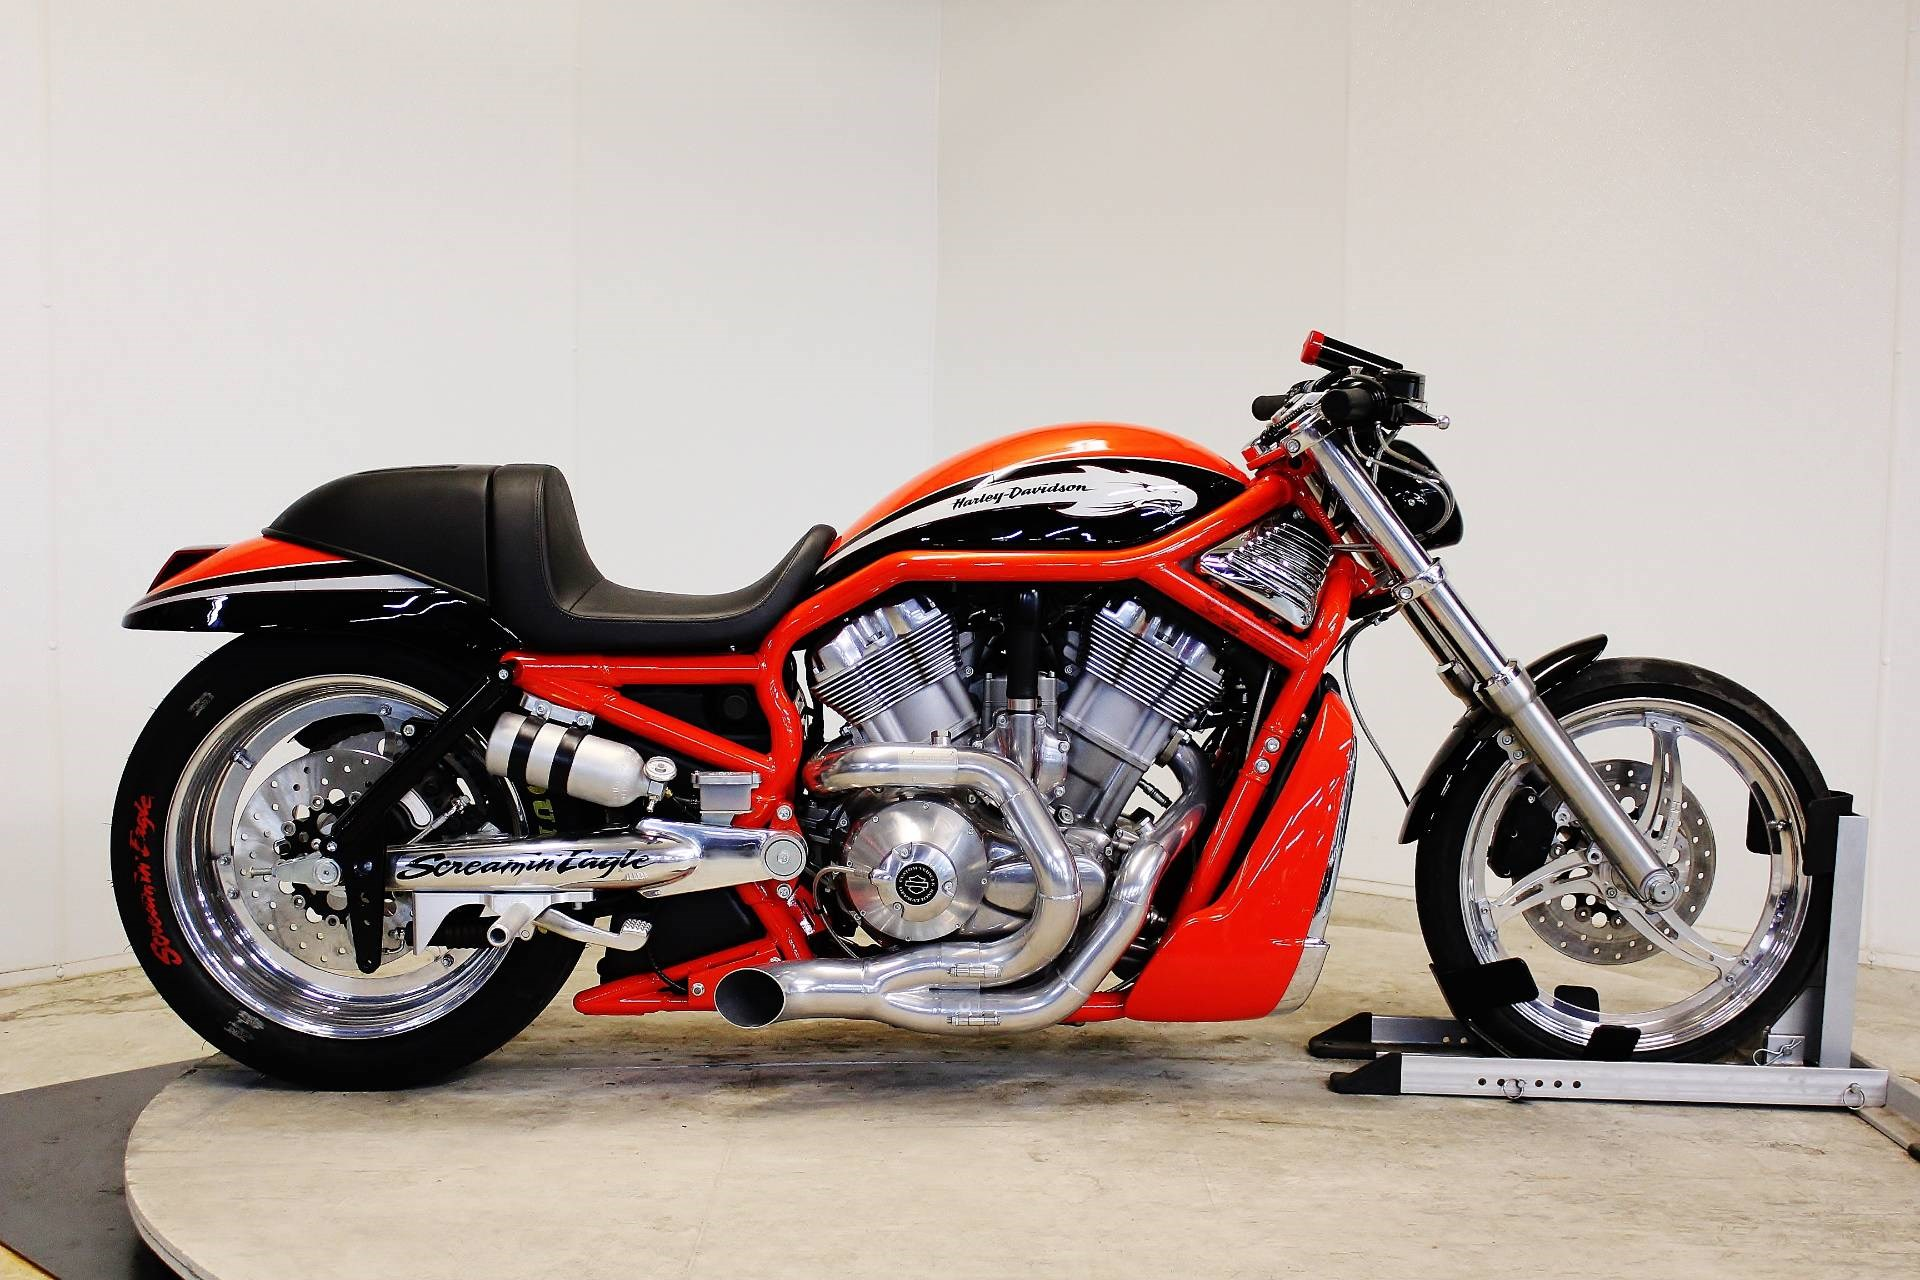 New Dyna Motorcycles For Sale Minnesota >> All New & Used Harley-Davidson® VRXSE V-Rod Destroyer For Sale (3 Bikes, Page 1) | ChopperExchange